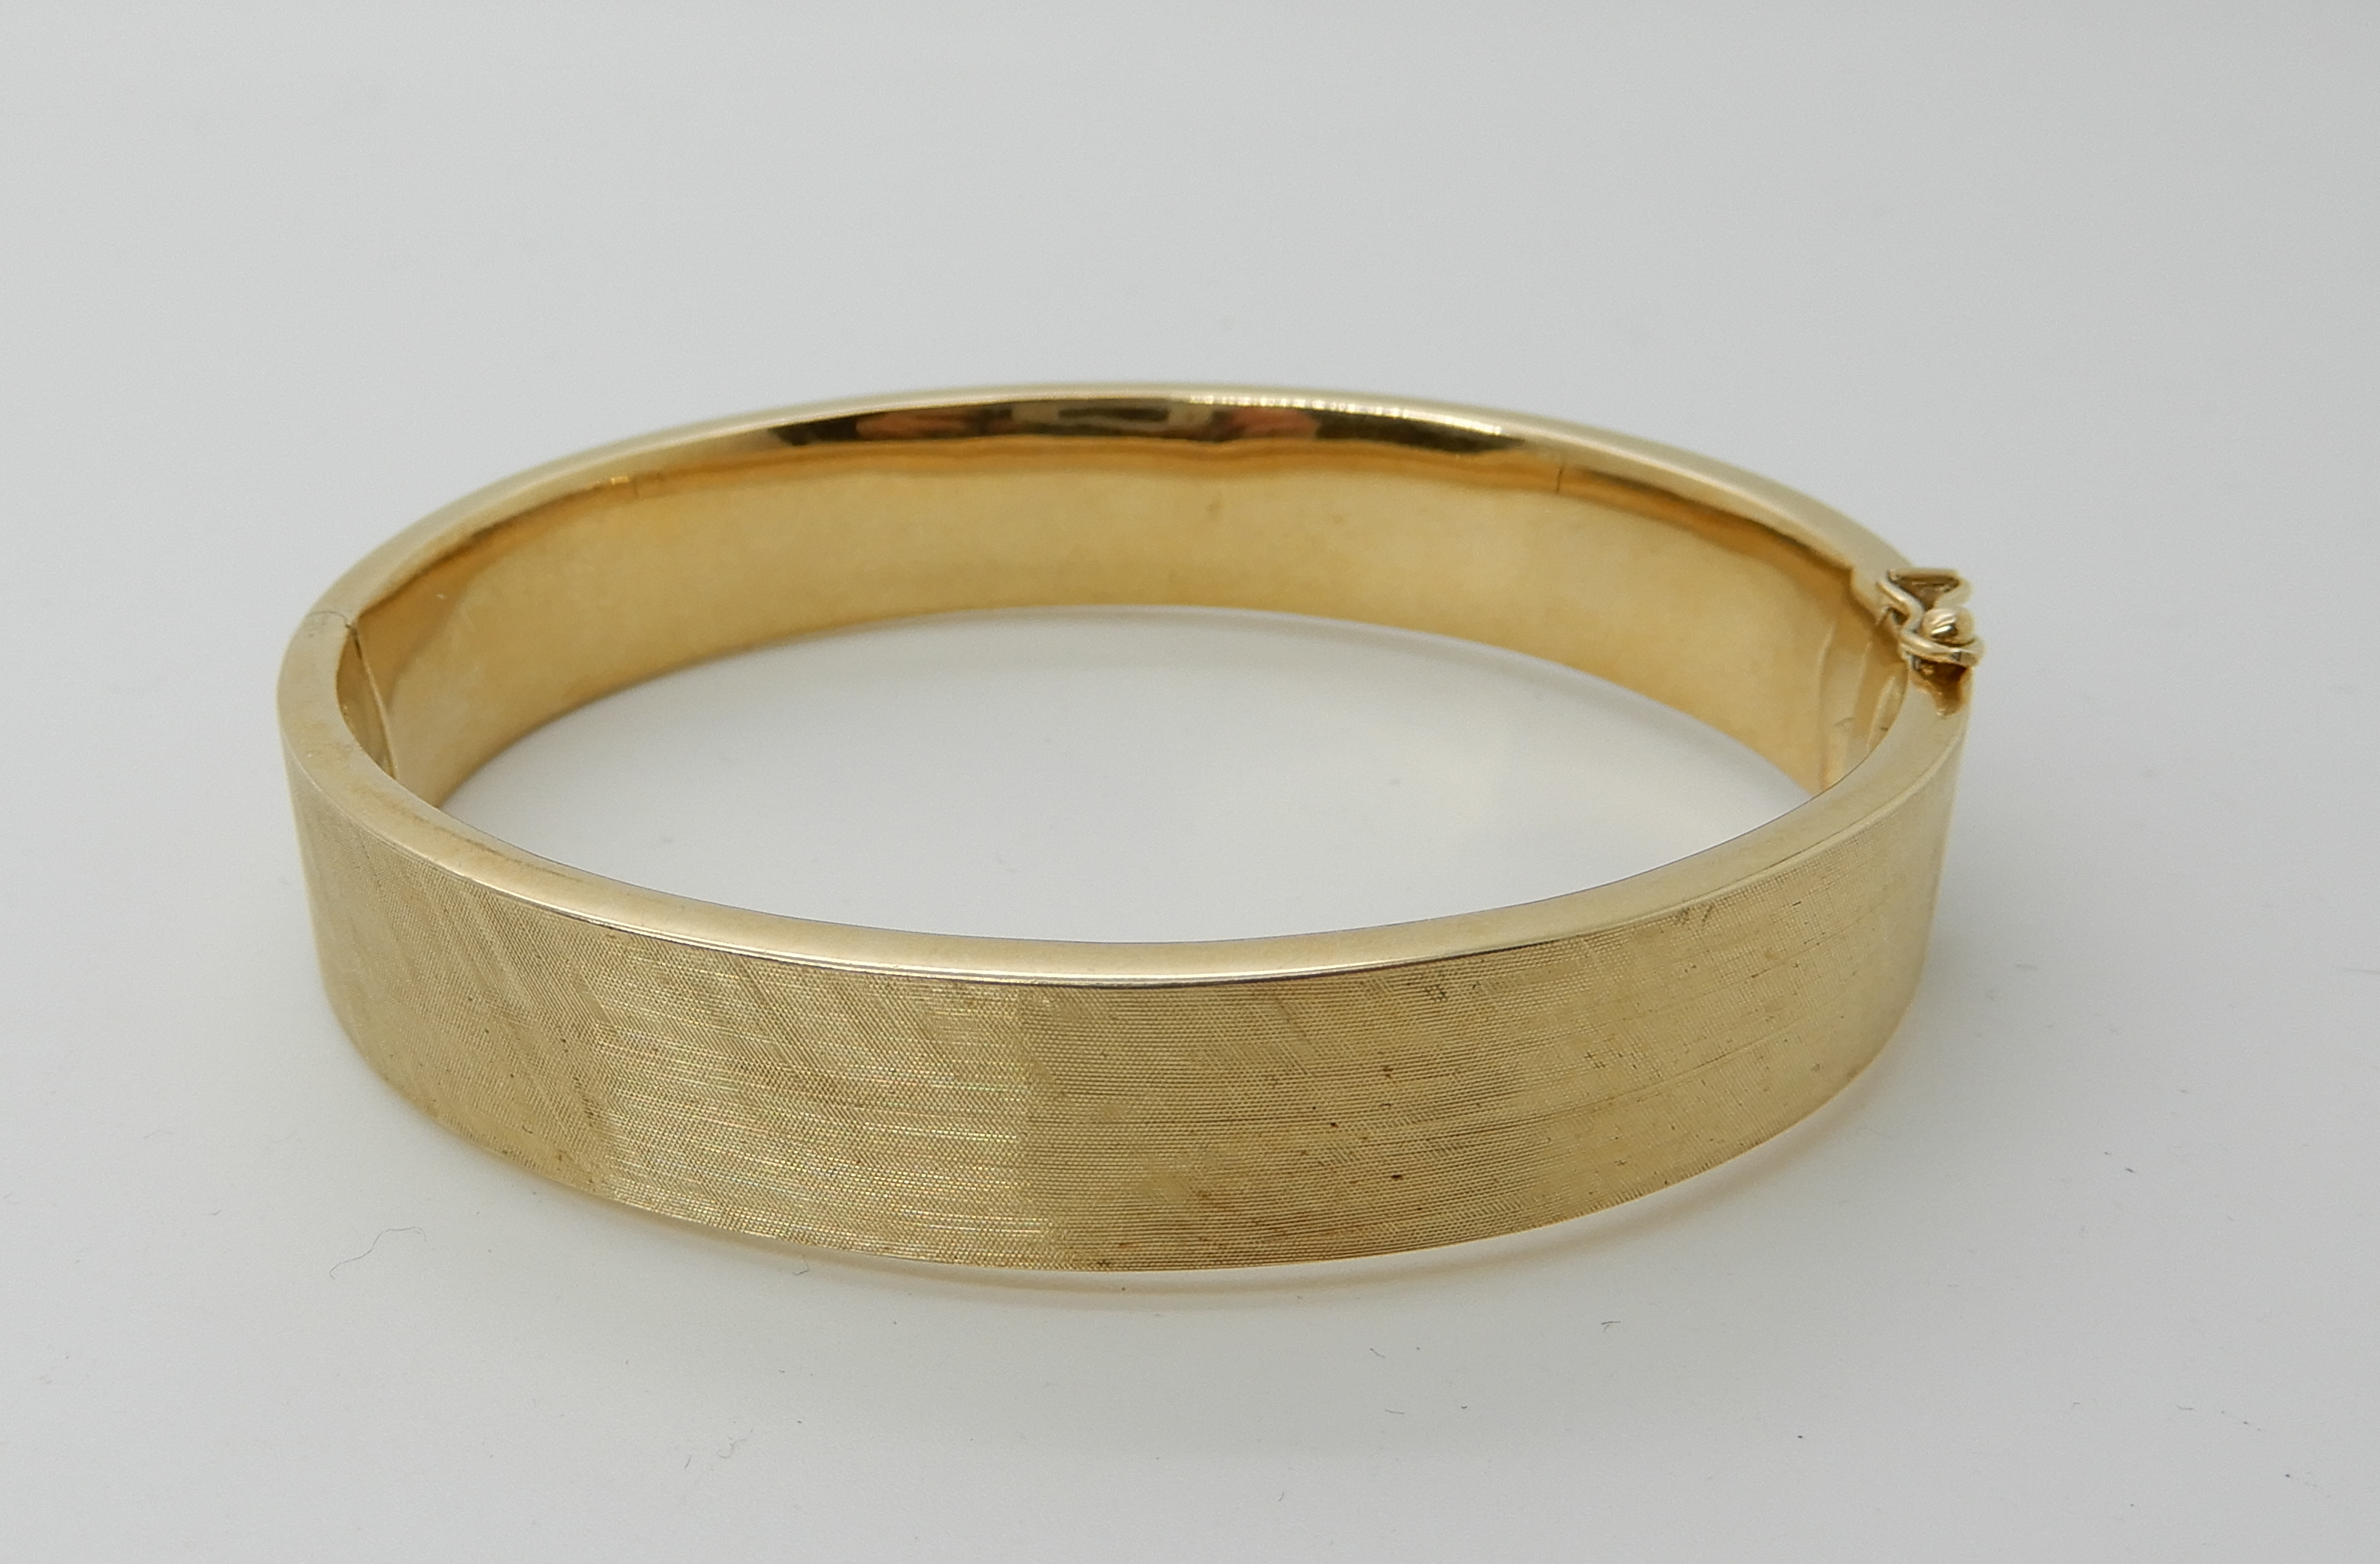 Lot 24 - A 14k gold brushed textured bangle, inner dimensions 6.3cm x 5.6cm, weight 25gms Condition Report: